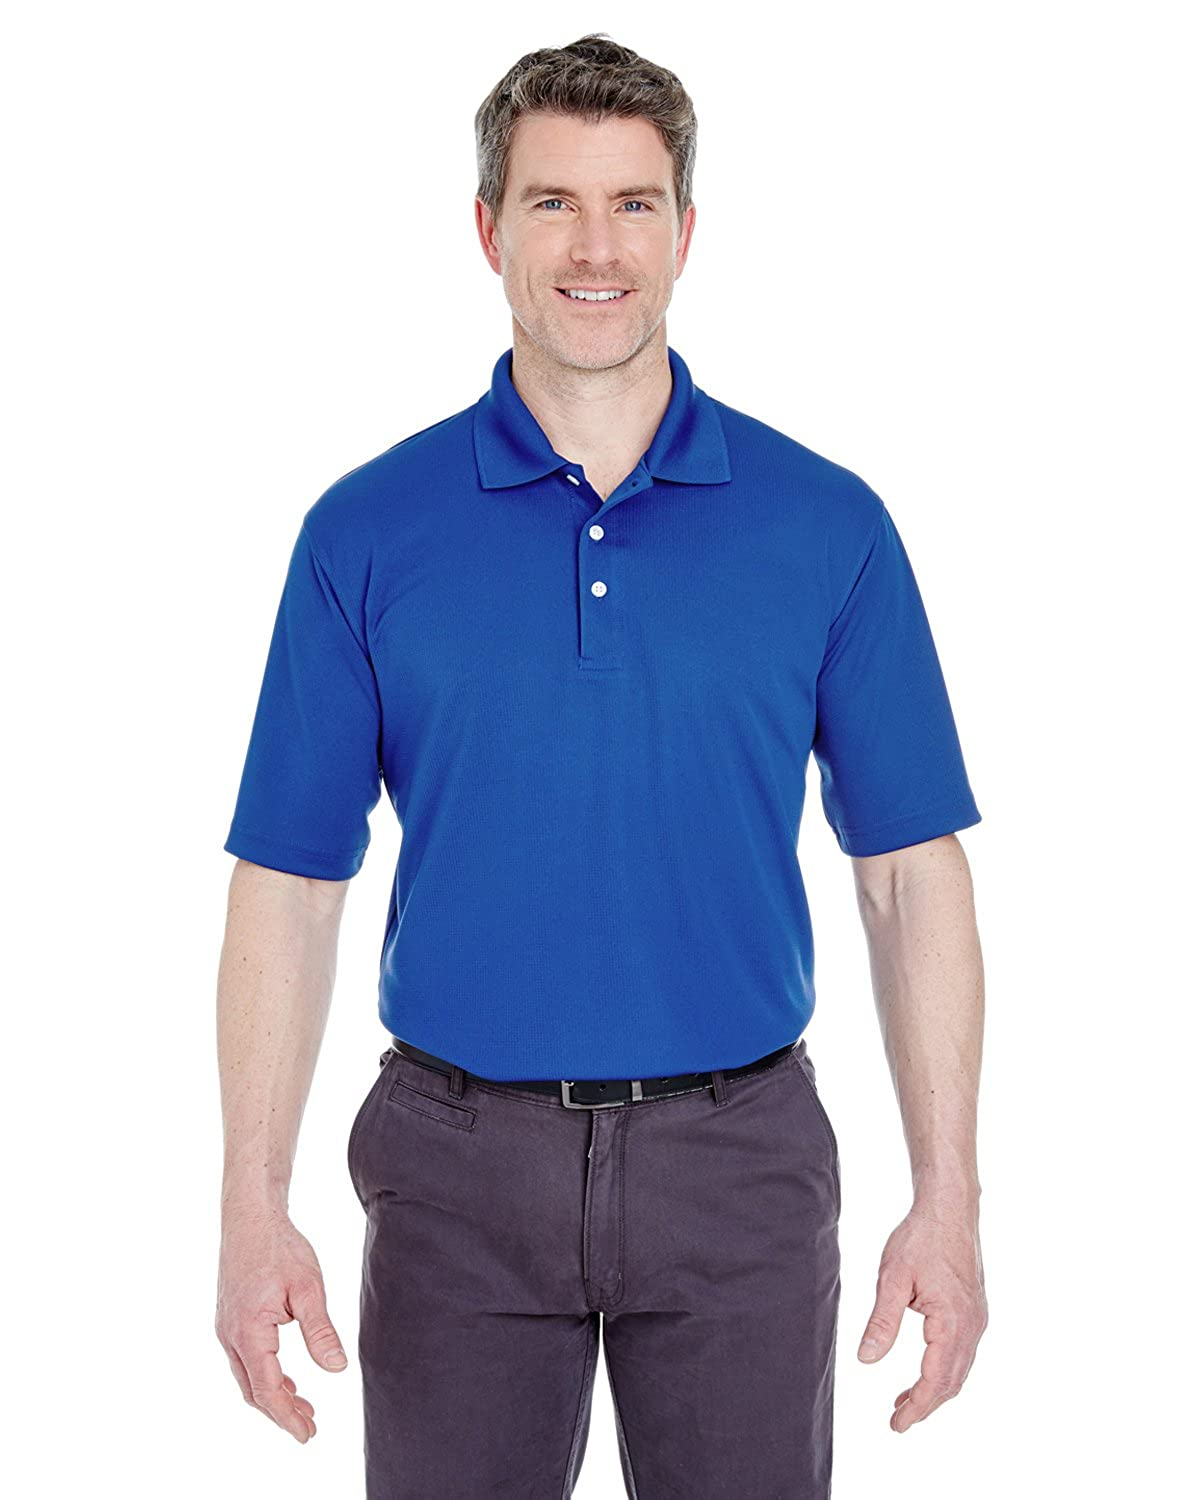 UltraClub Men's Cool - Dry Stain-Release Polo Shirt 8445